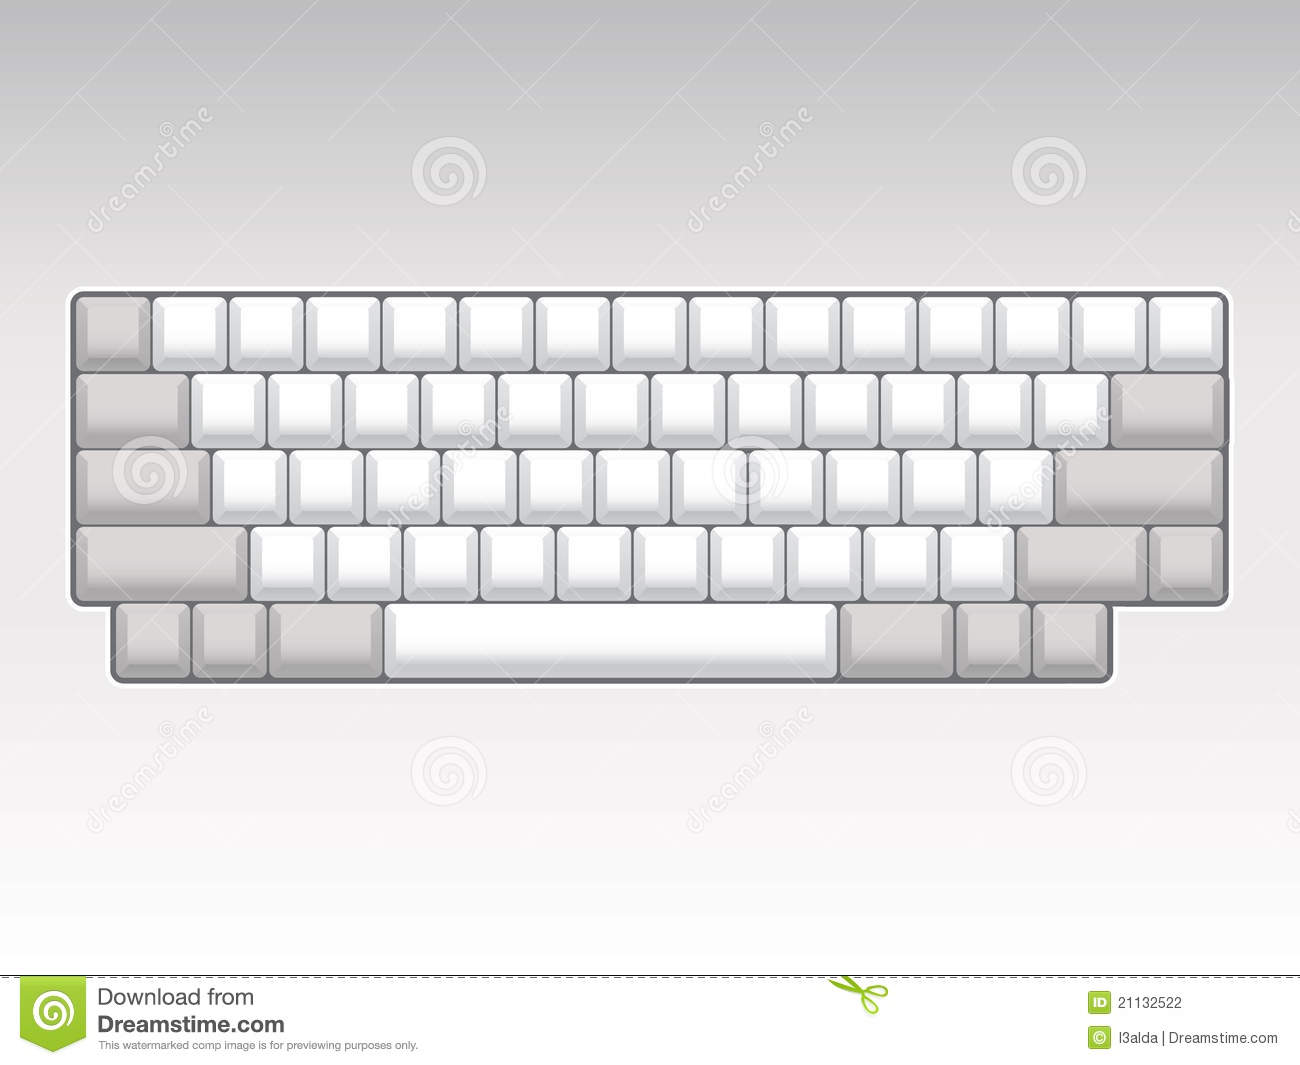 Blank computer keyboard clipart vector royalty free Blank Computer Keyboard Keys Stock Illustrations – 160 Blank ... vector royalty free